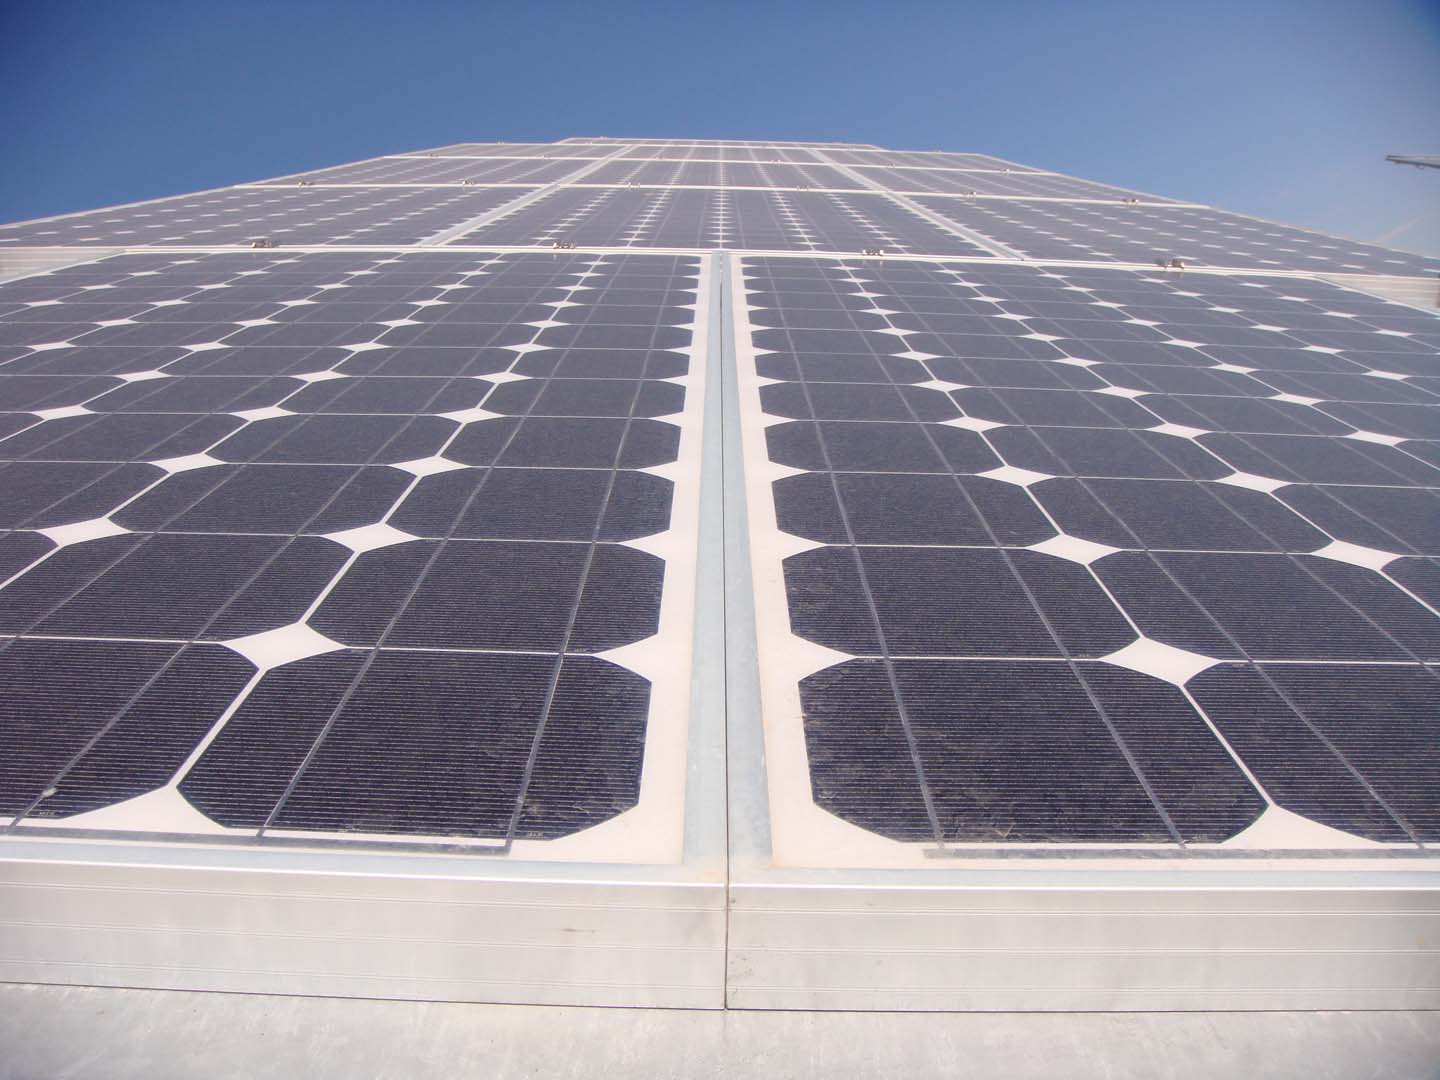 Serving as an independent EPC contractor, M+W Group designs and develops commercial and utility-scale PV projects for various companies and utilities. Image: theregeneration / Flickr